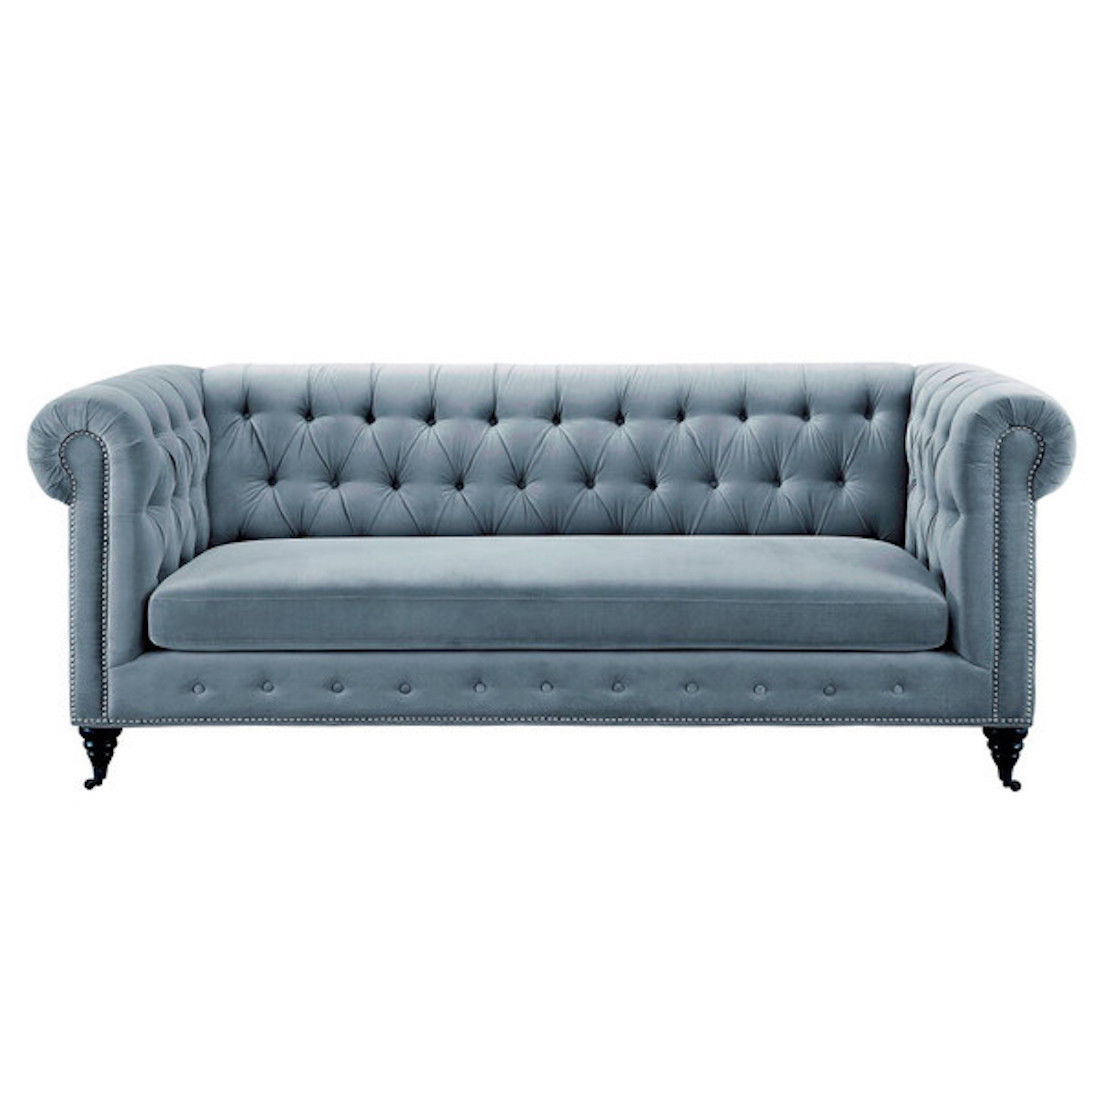 gray velvet sofa with nailheads 399 furniture warehouse grey chesterfield rolled arms nail head trim